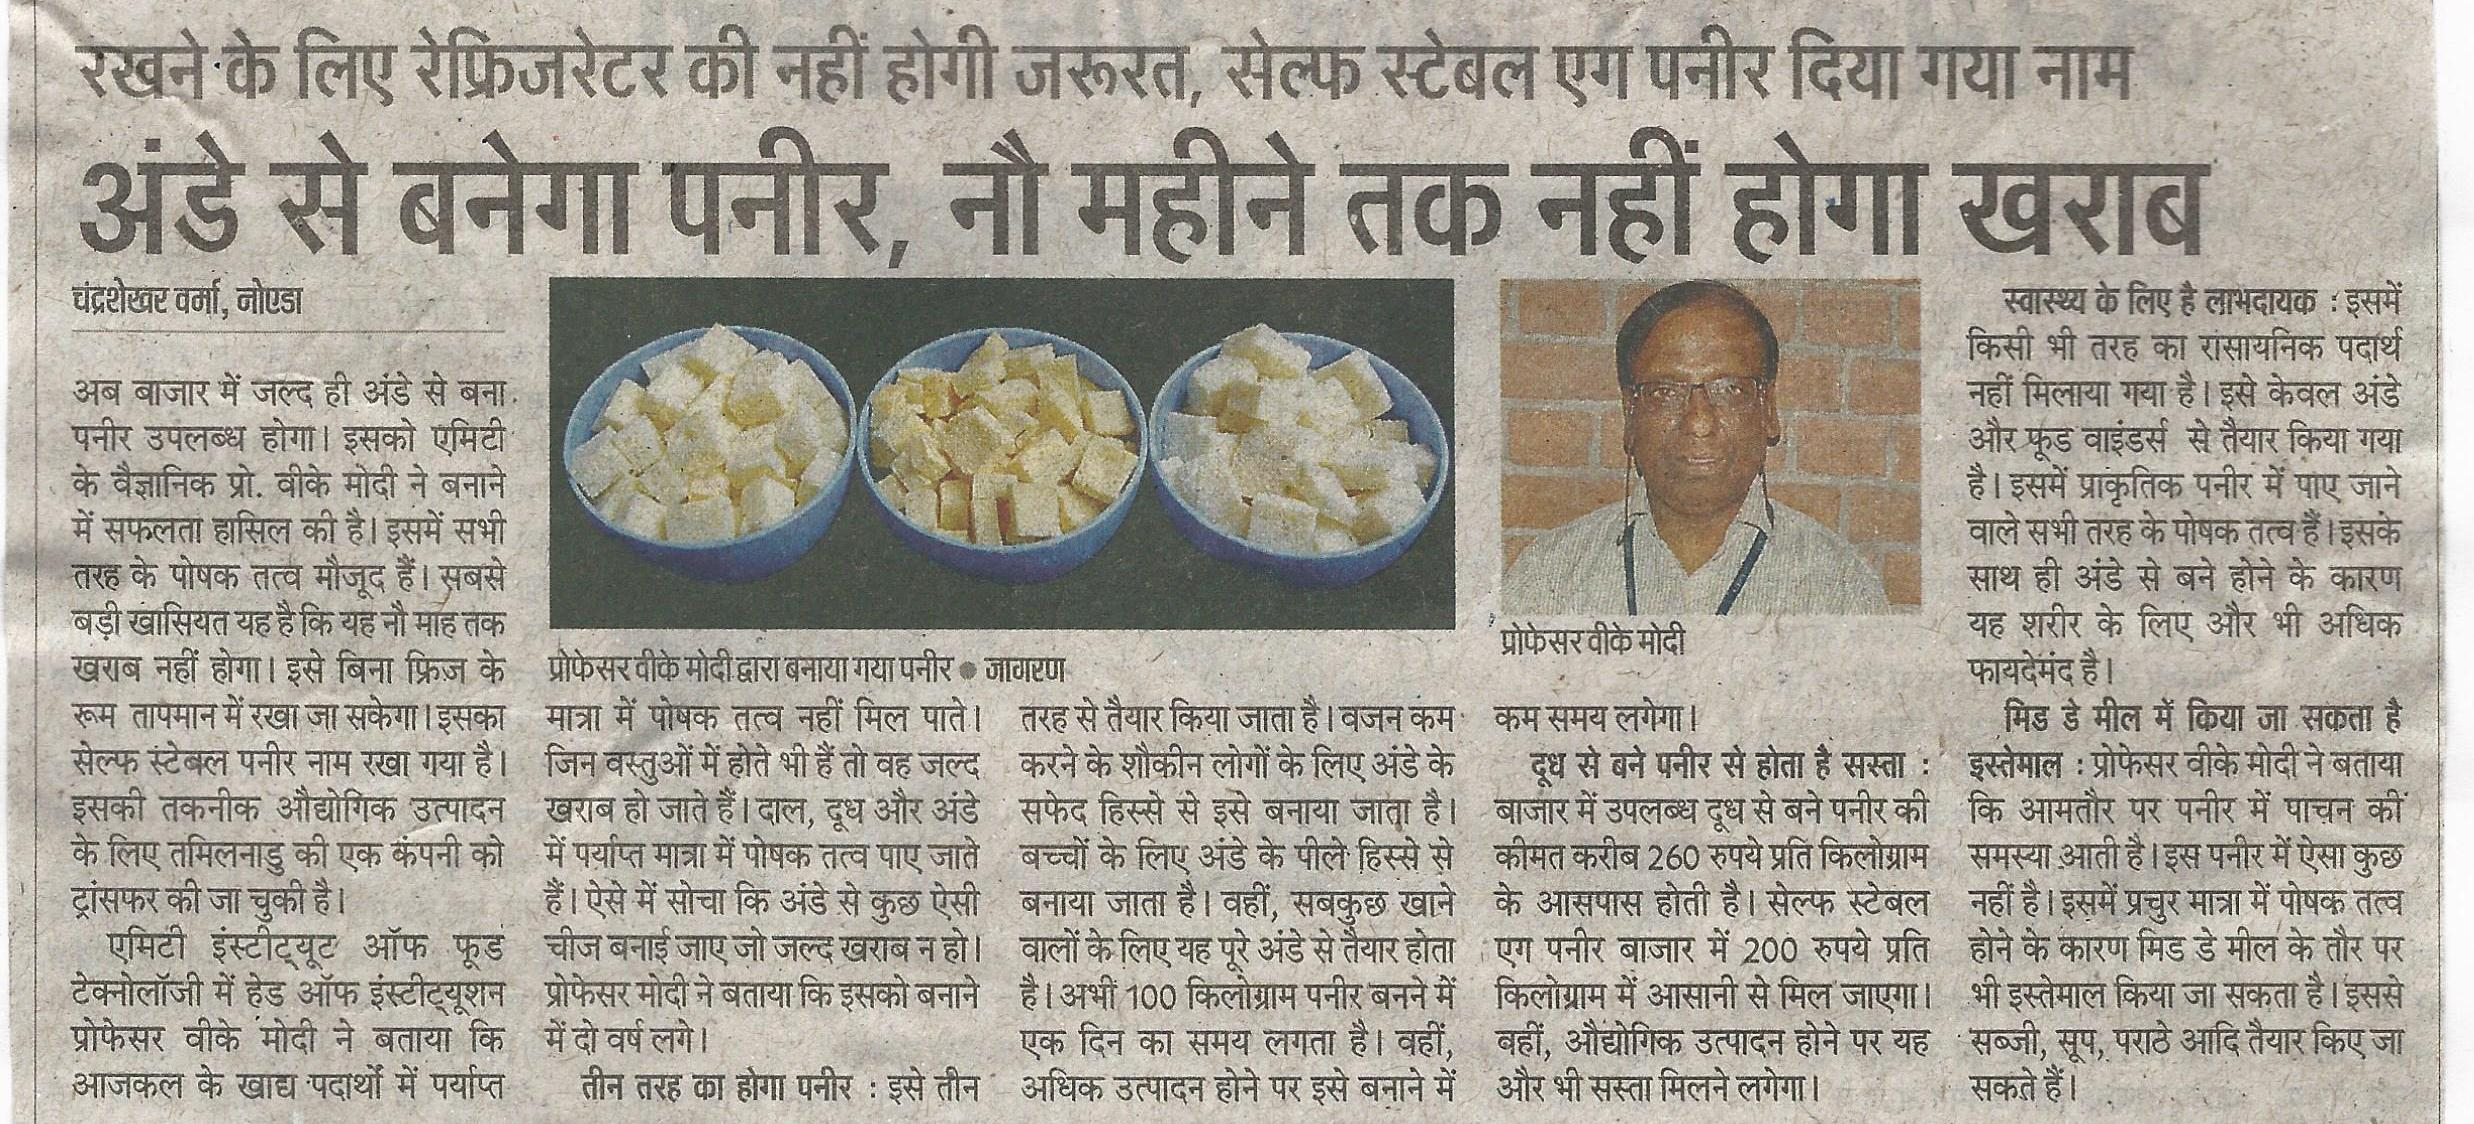 Innovation on Paneer made from Egg by Prof VK Modi - Amity Events